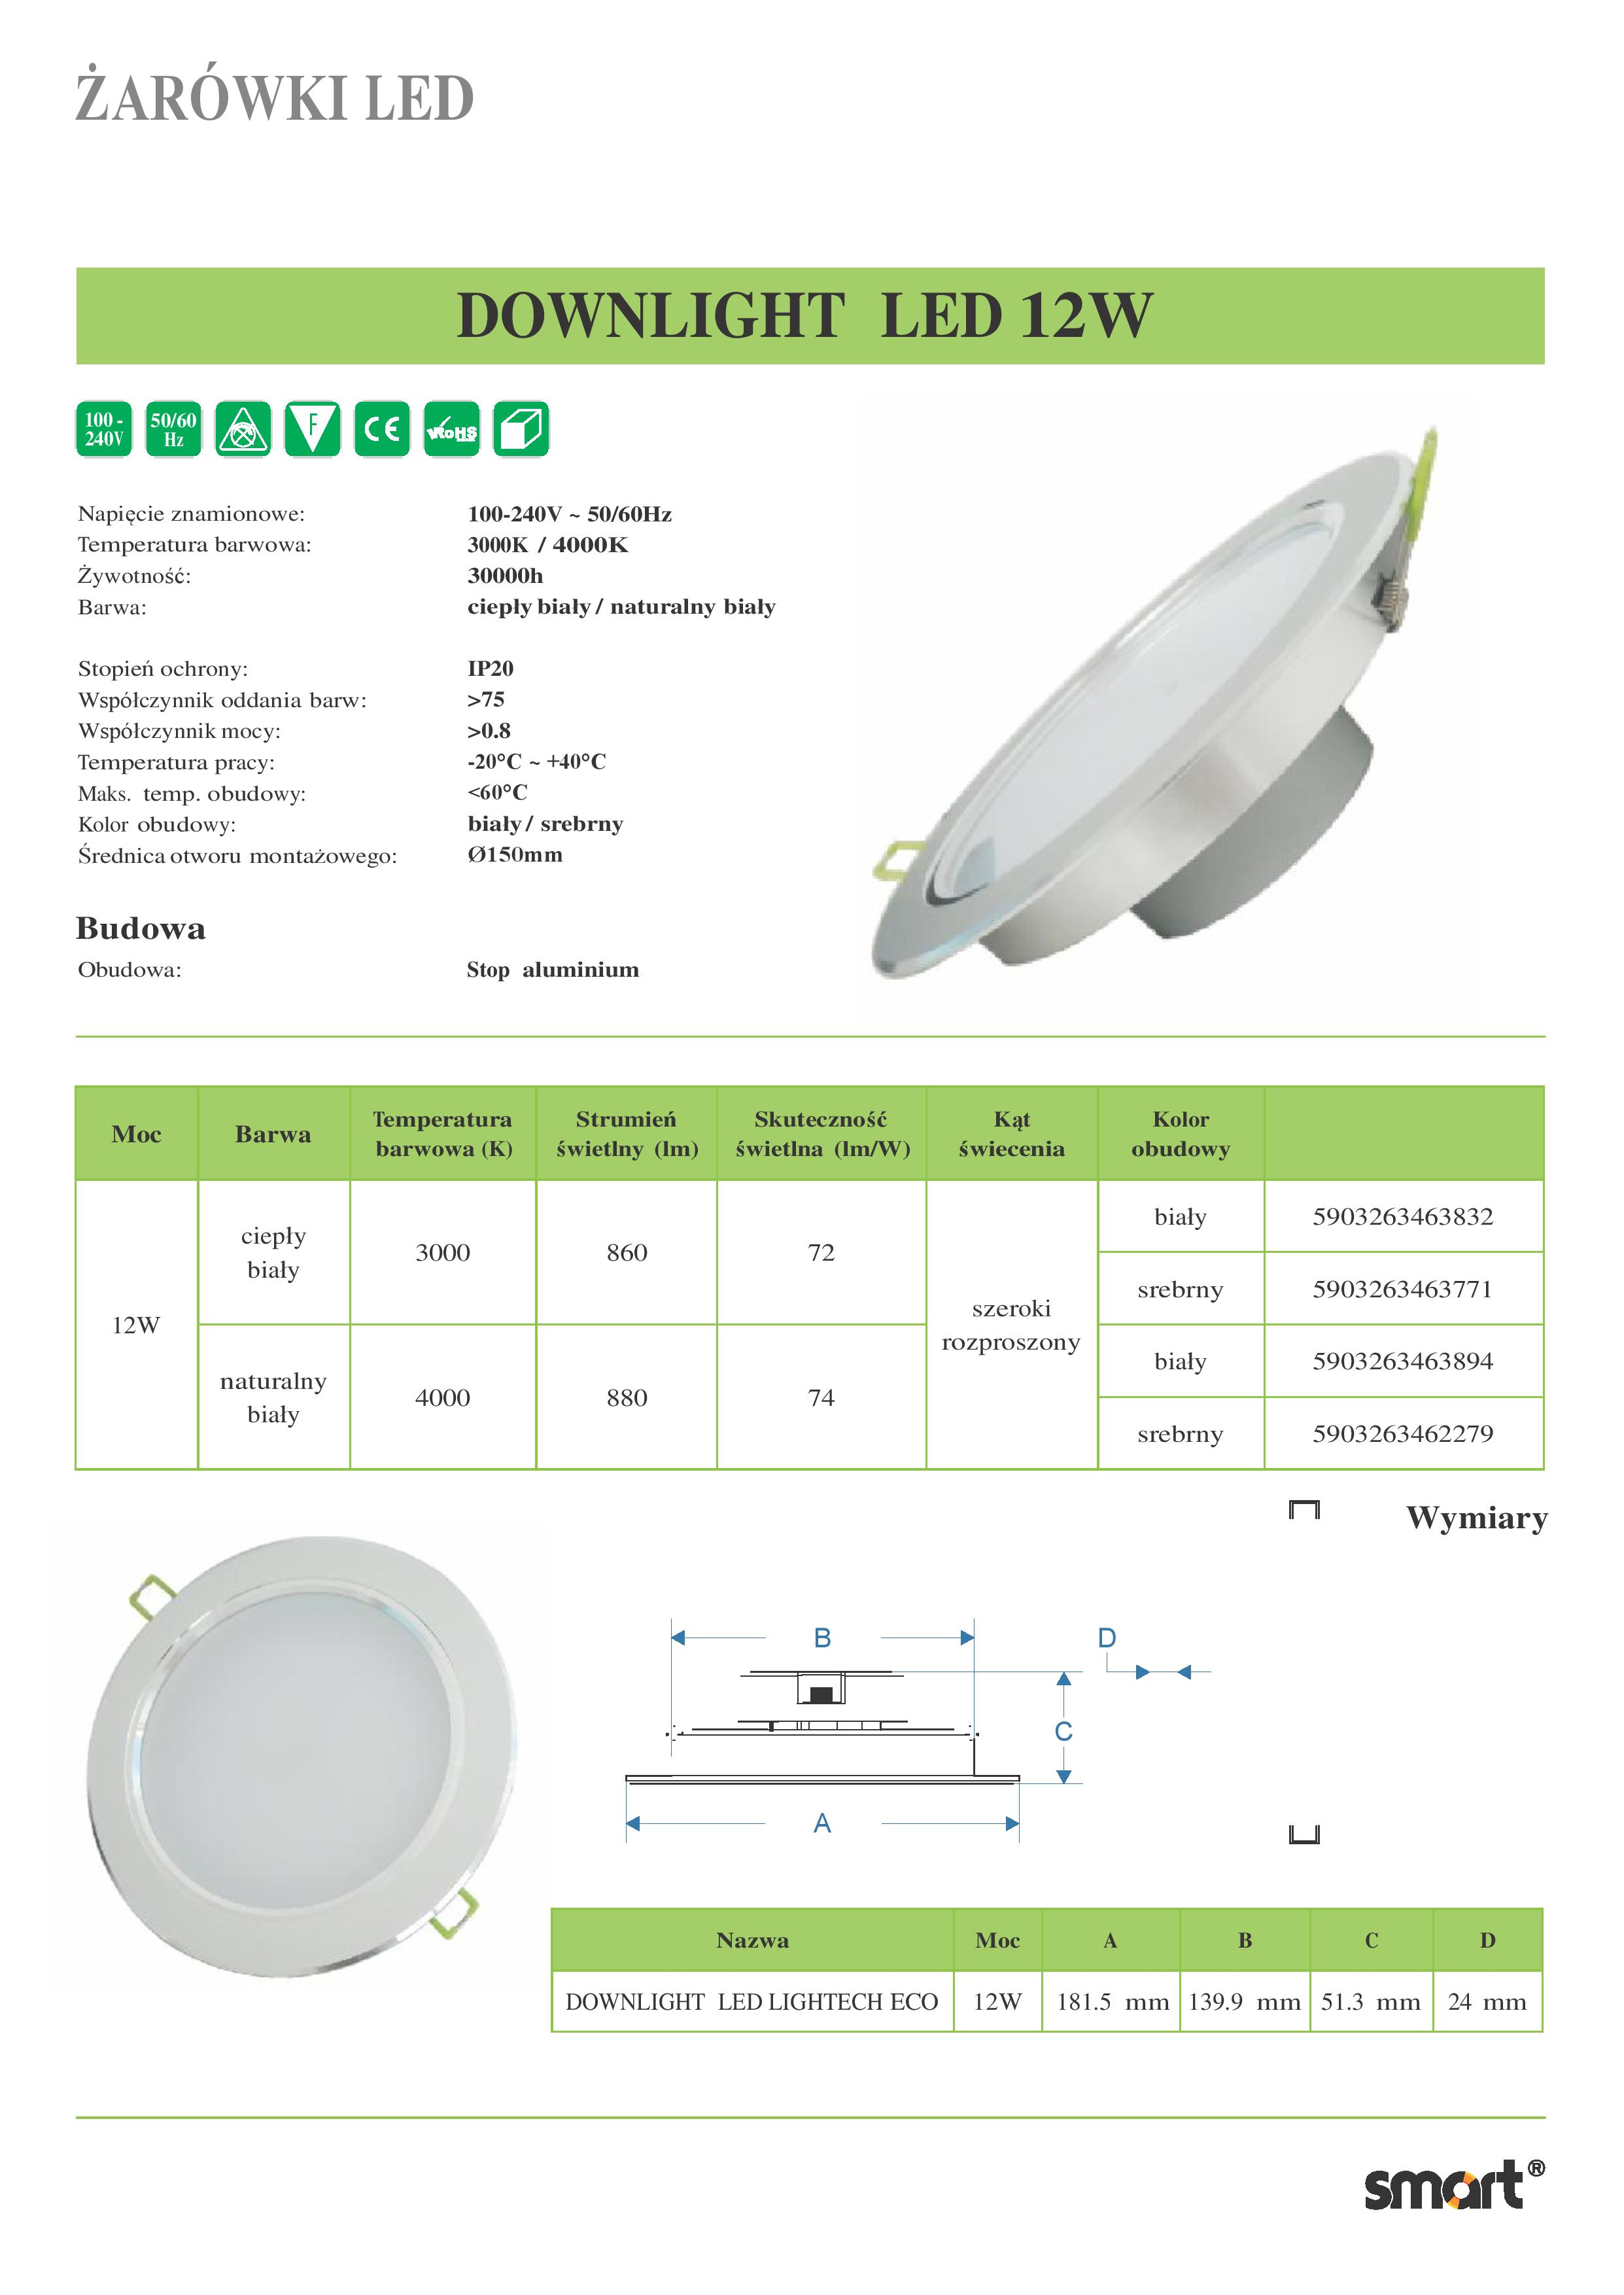 DOWNLIGHT-LED-12W